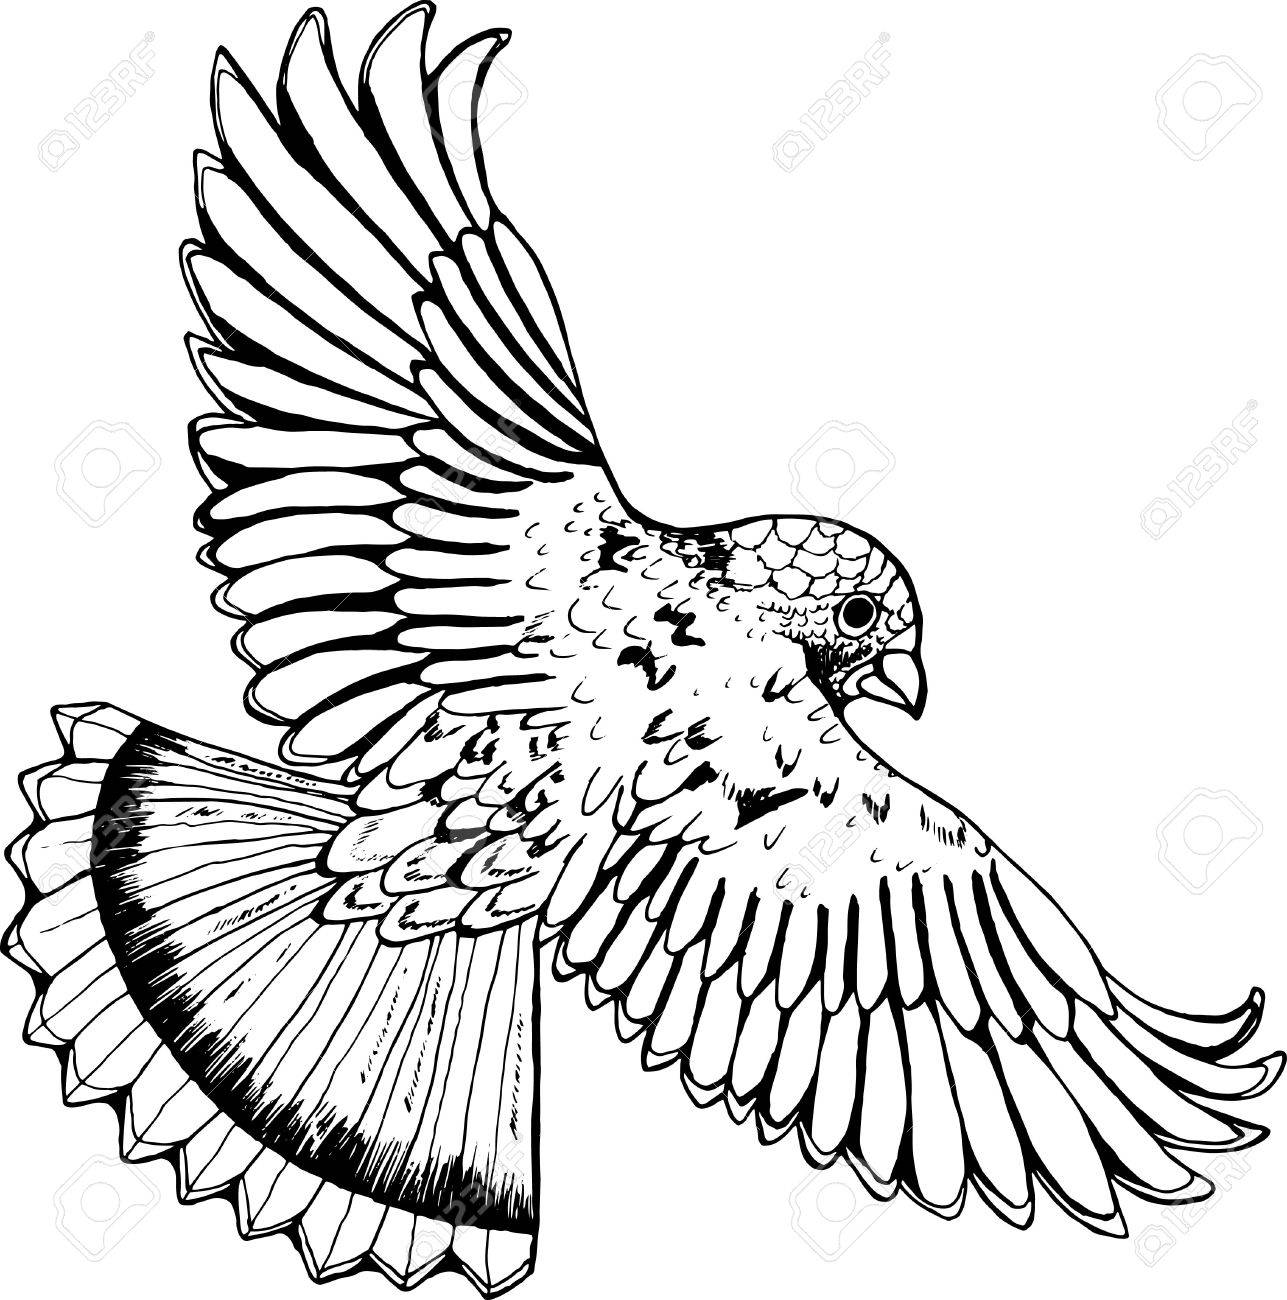 1287x1300 Black And White Drawing Of An Eagle. Bird In Flight Royalty Free